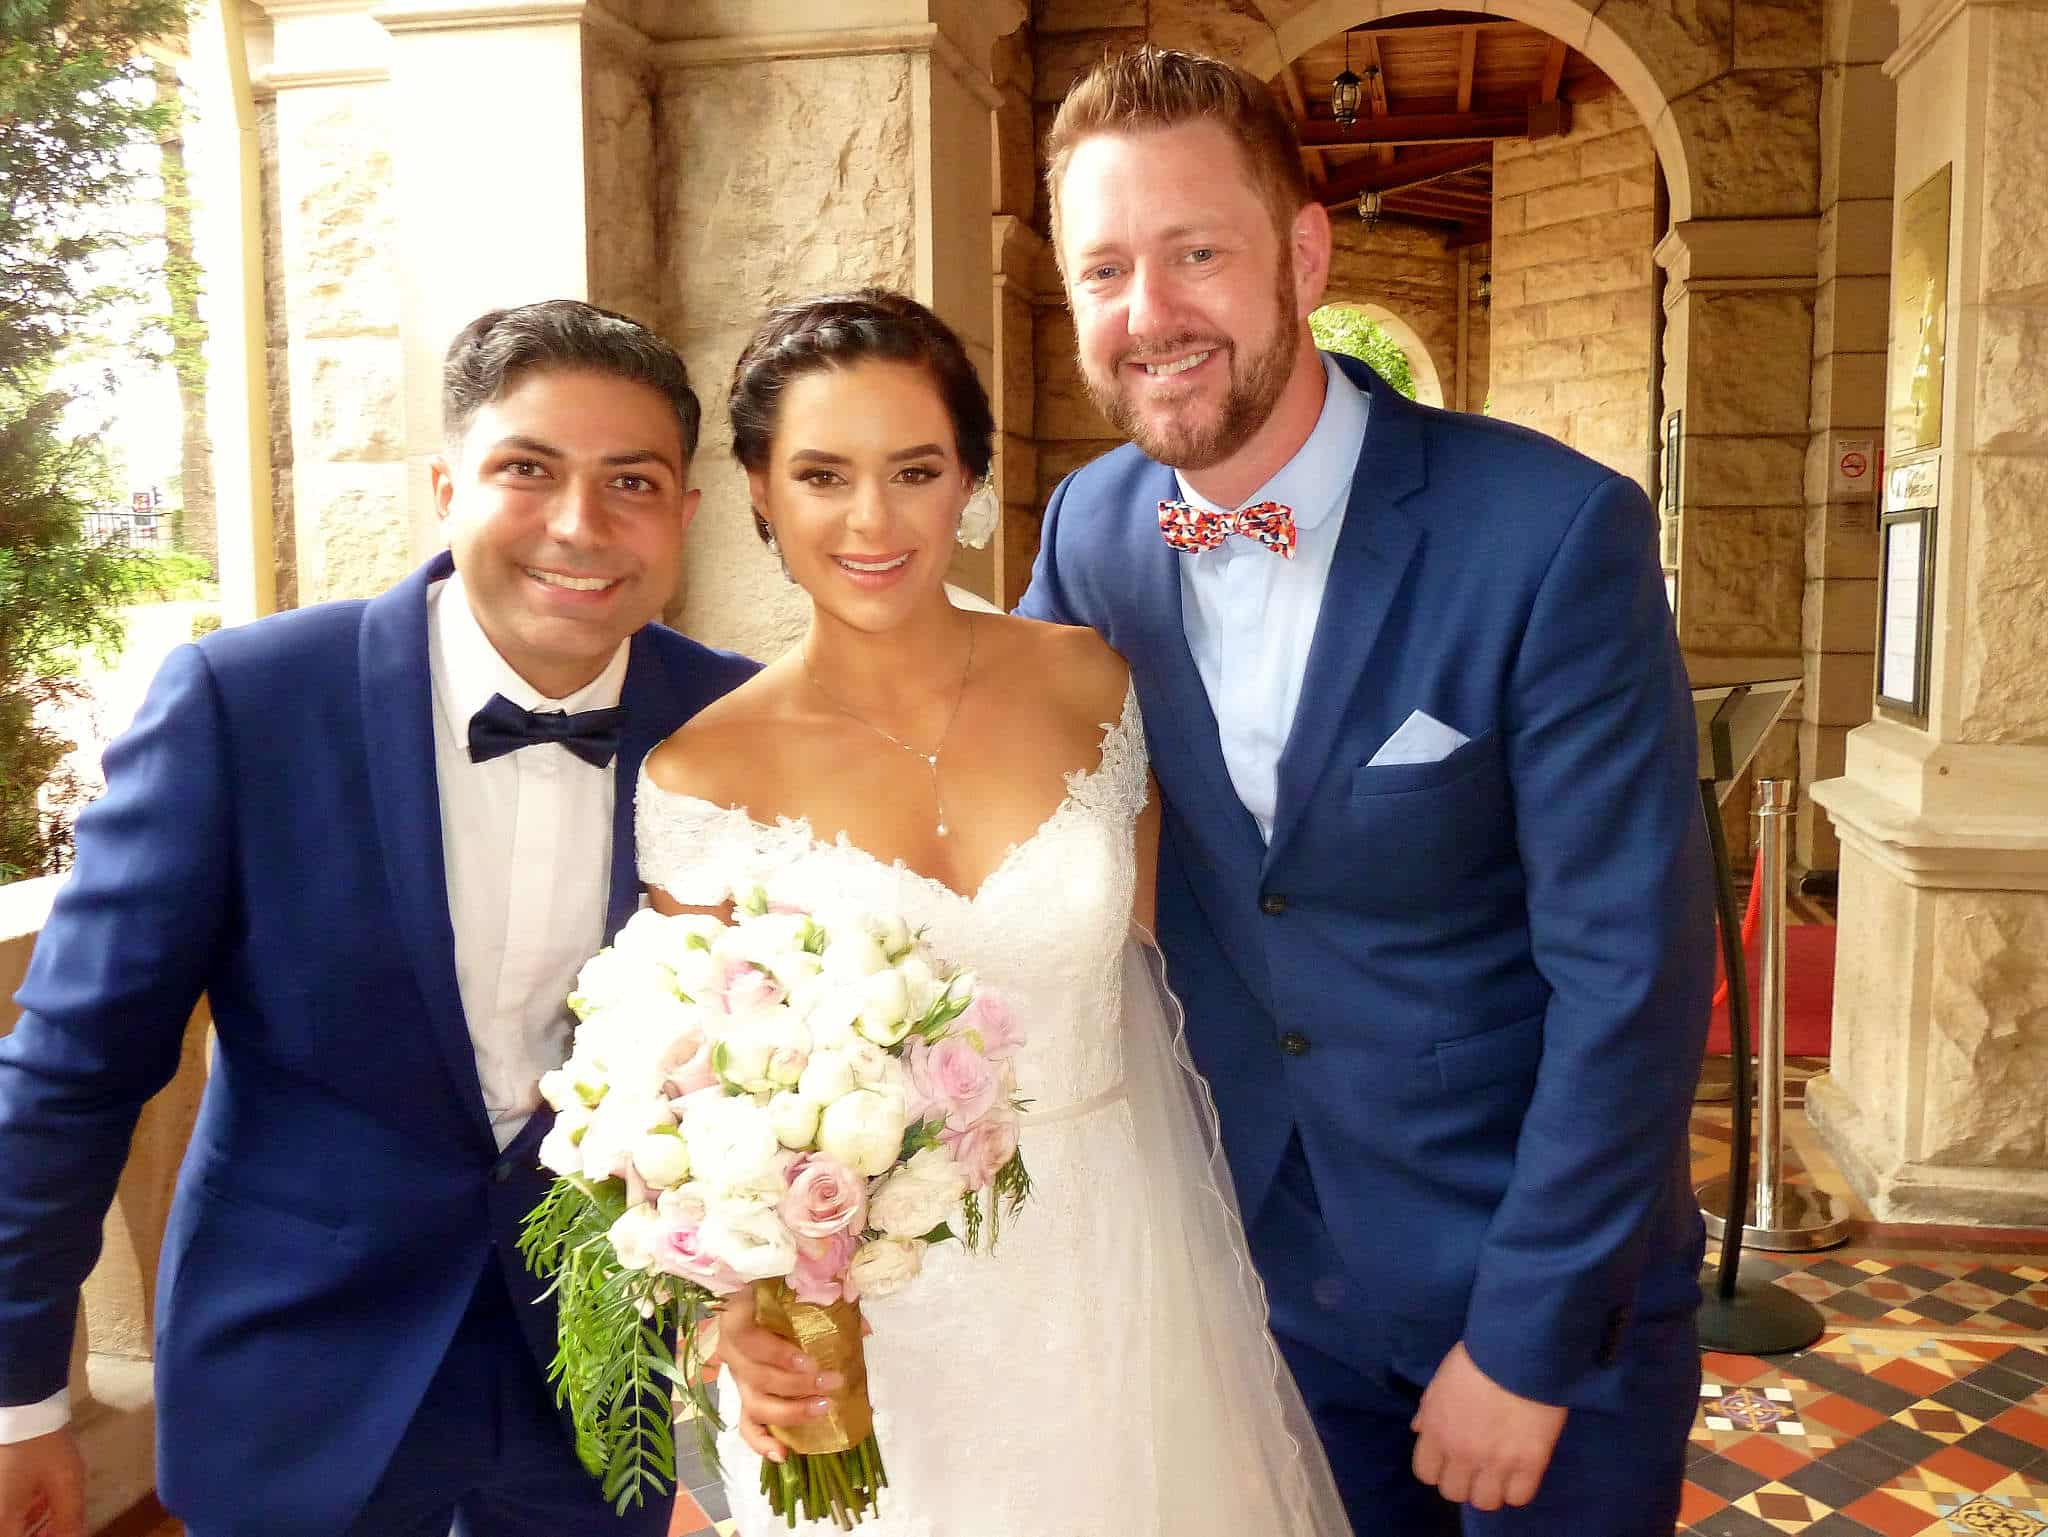 Mahan and Poppy at Curzon Hall - Marriage Celebrant Sydney Stephen Lee